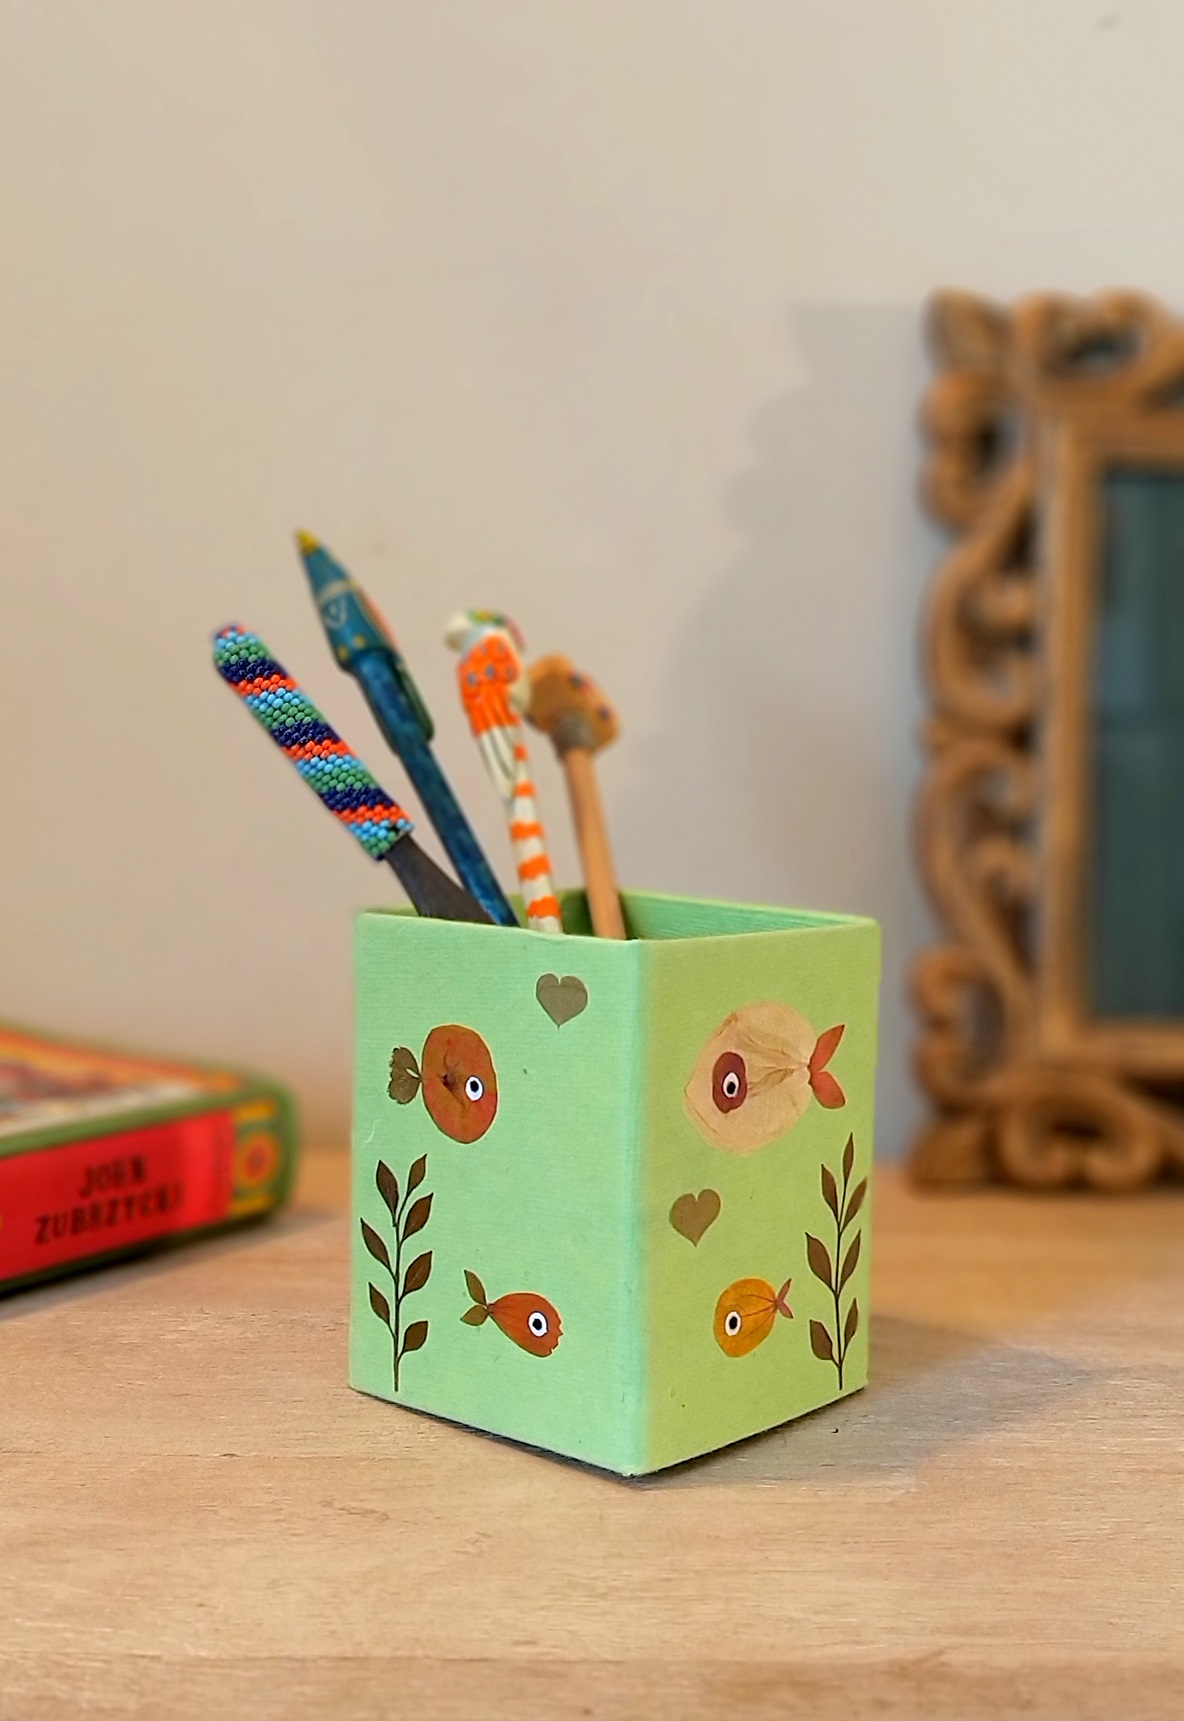 GoFishing Pencil Holder